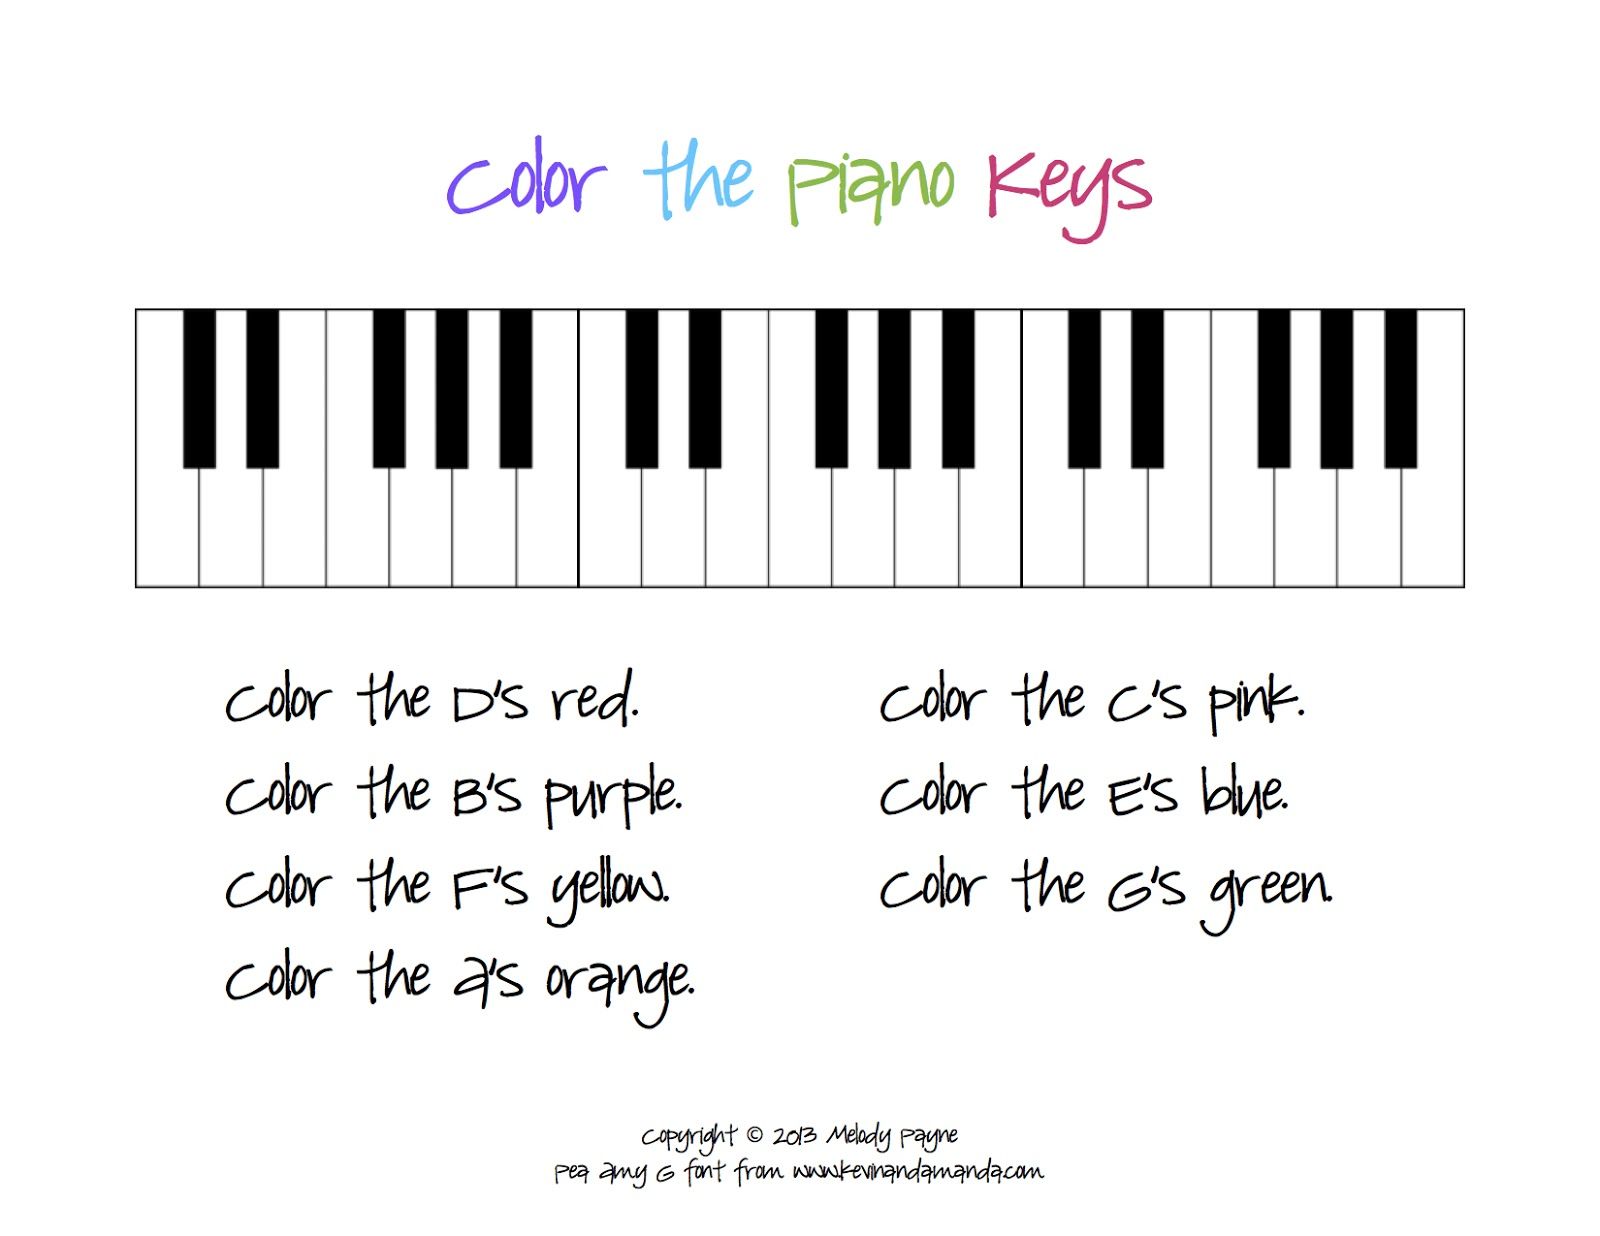 Beginner Piano Worksheets Printable Free | Free Printables Worksheet - Beginner Piano Worksheets Printable Free